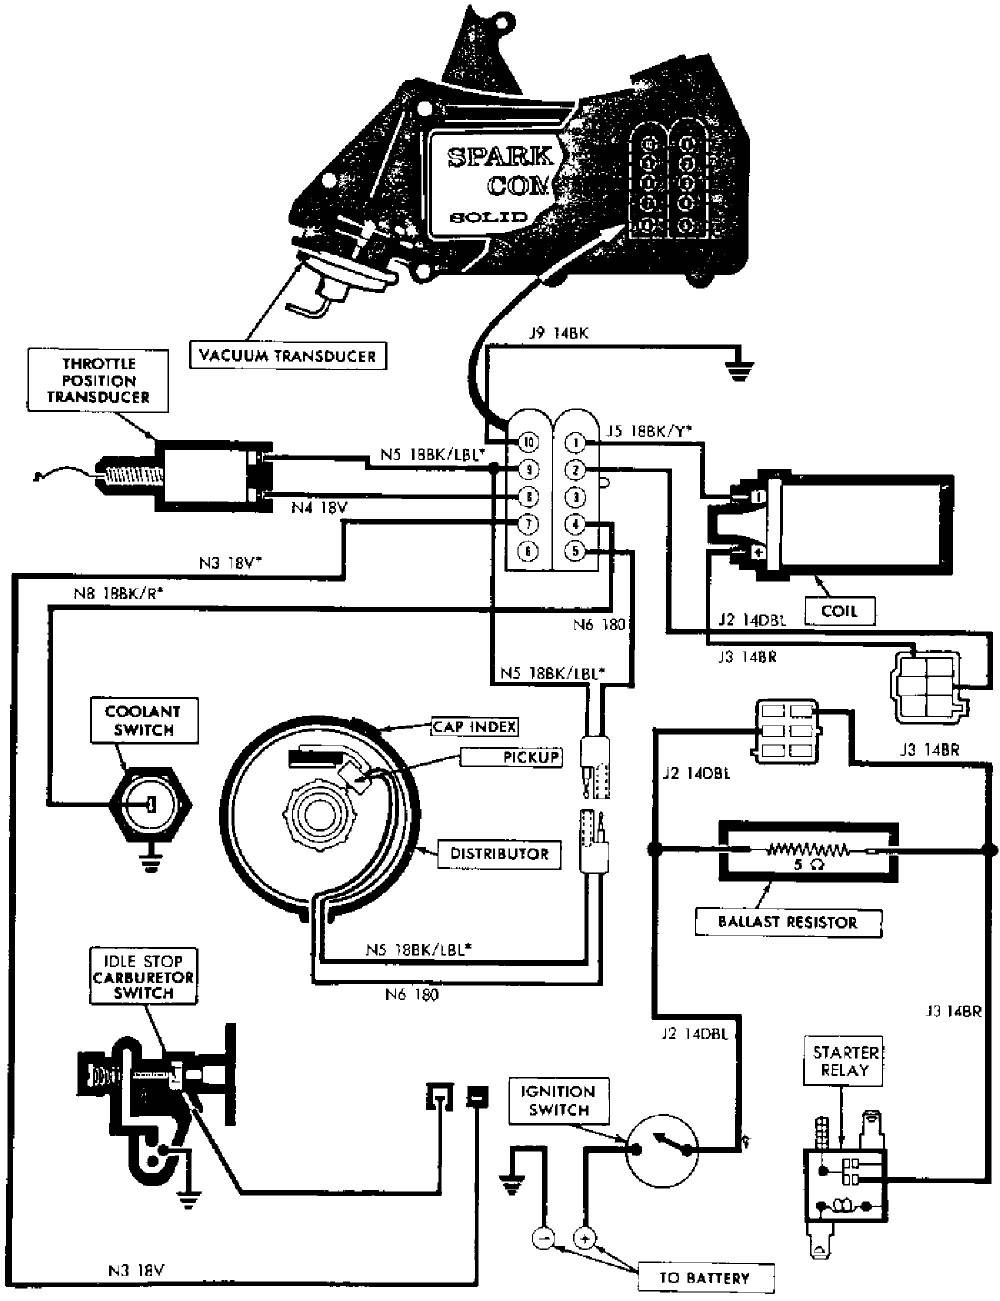 small resolution of wrg 7045 plymouth volare wiring diagram 1976 plymouth volare wiring diagram explained wiring diagrams wiring